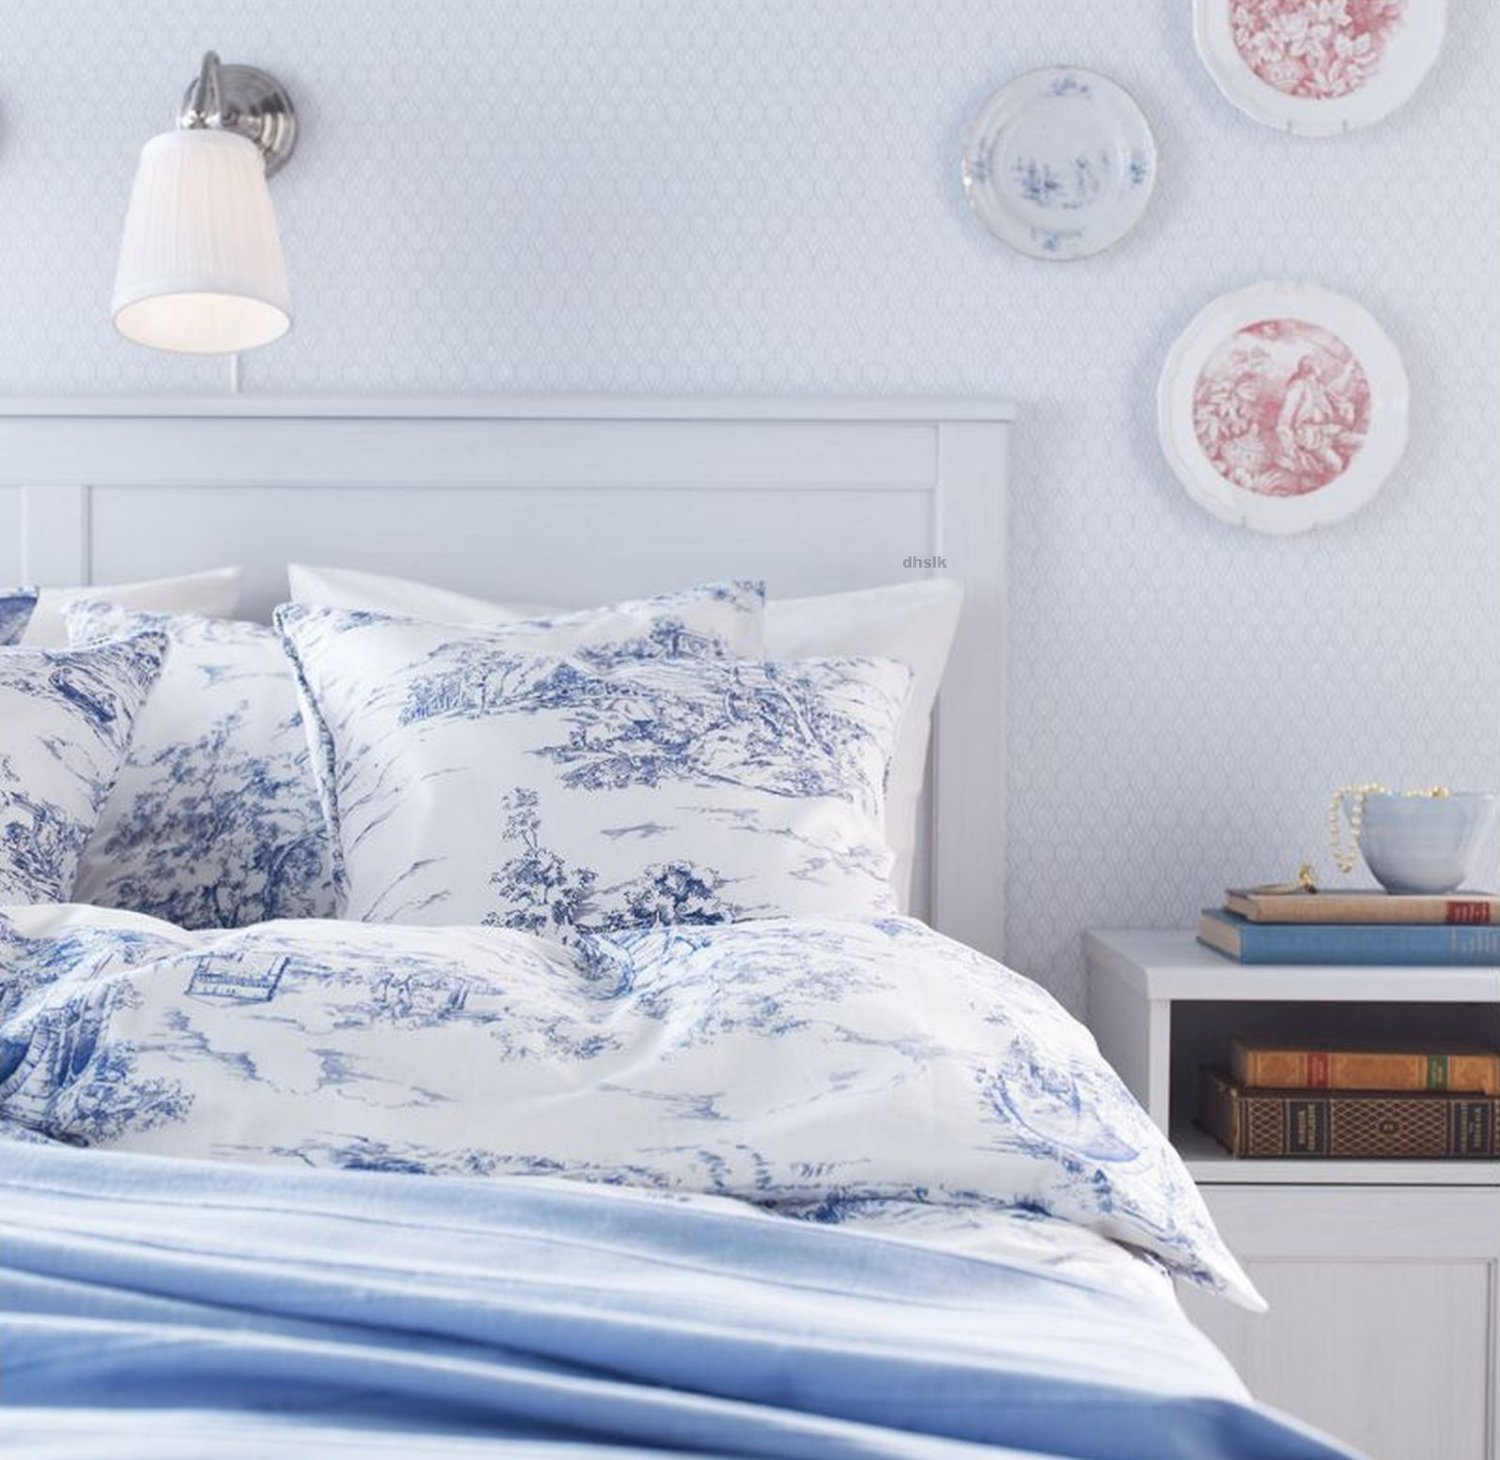 ikea emmie land queen duvet cover pillowcases set blue white toile french design double full. Black Bedroom Furniture Sets. Home Design Ideas